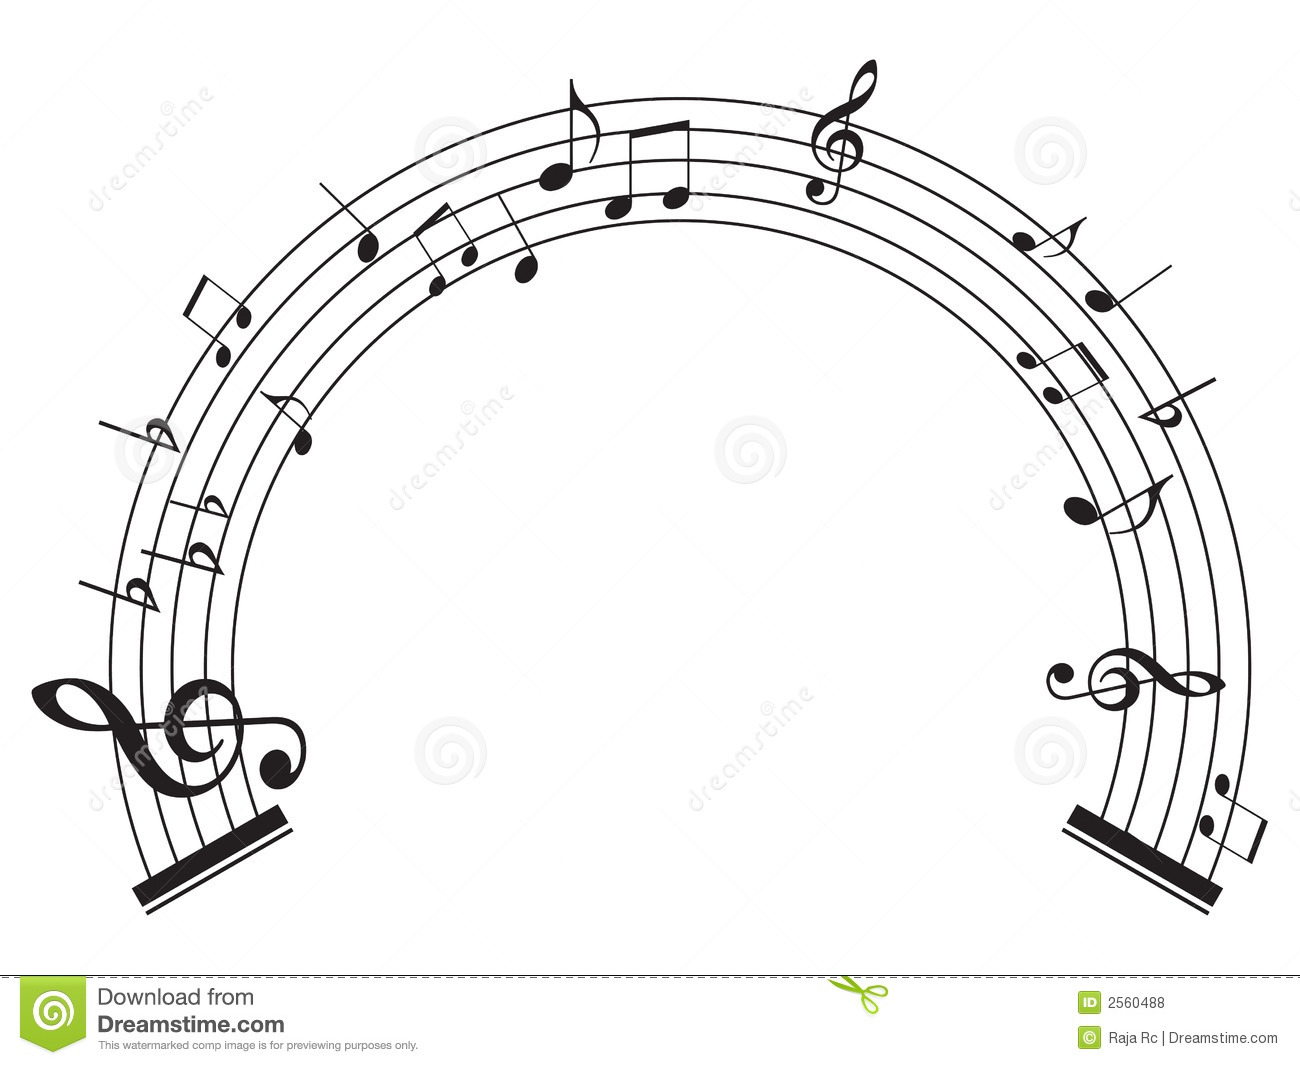 Music notes stock vector. Image of note, song, beat, logo